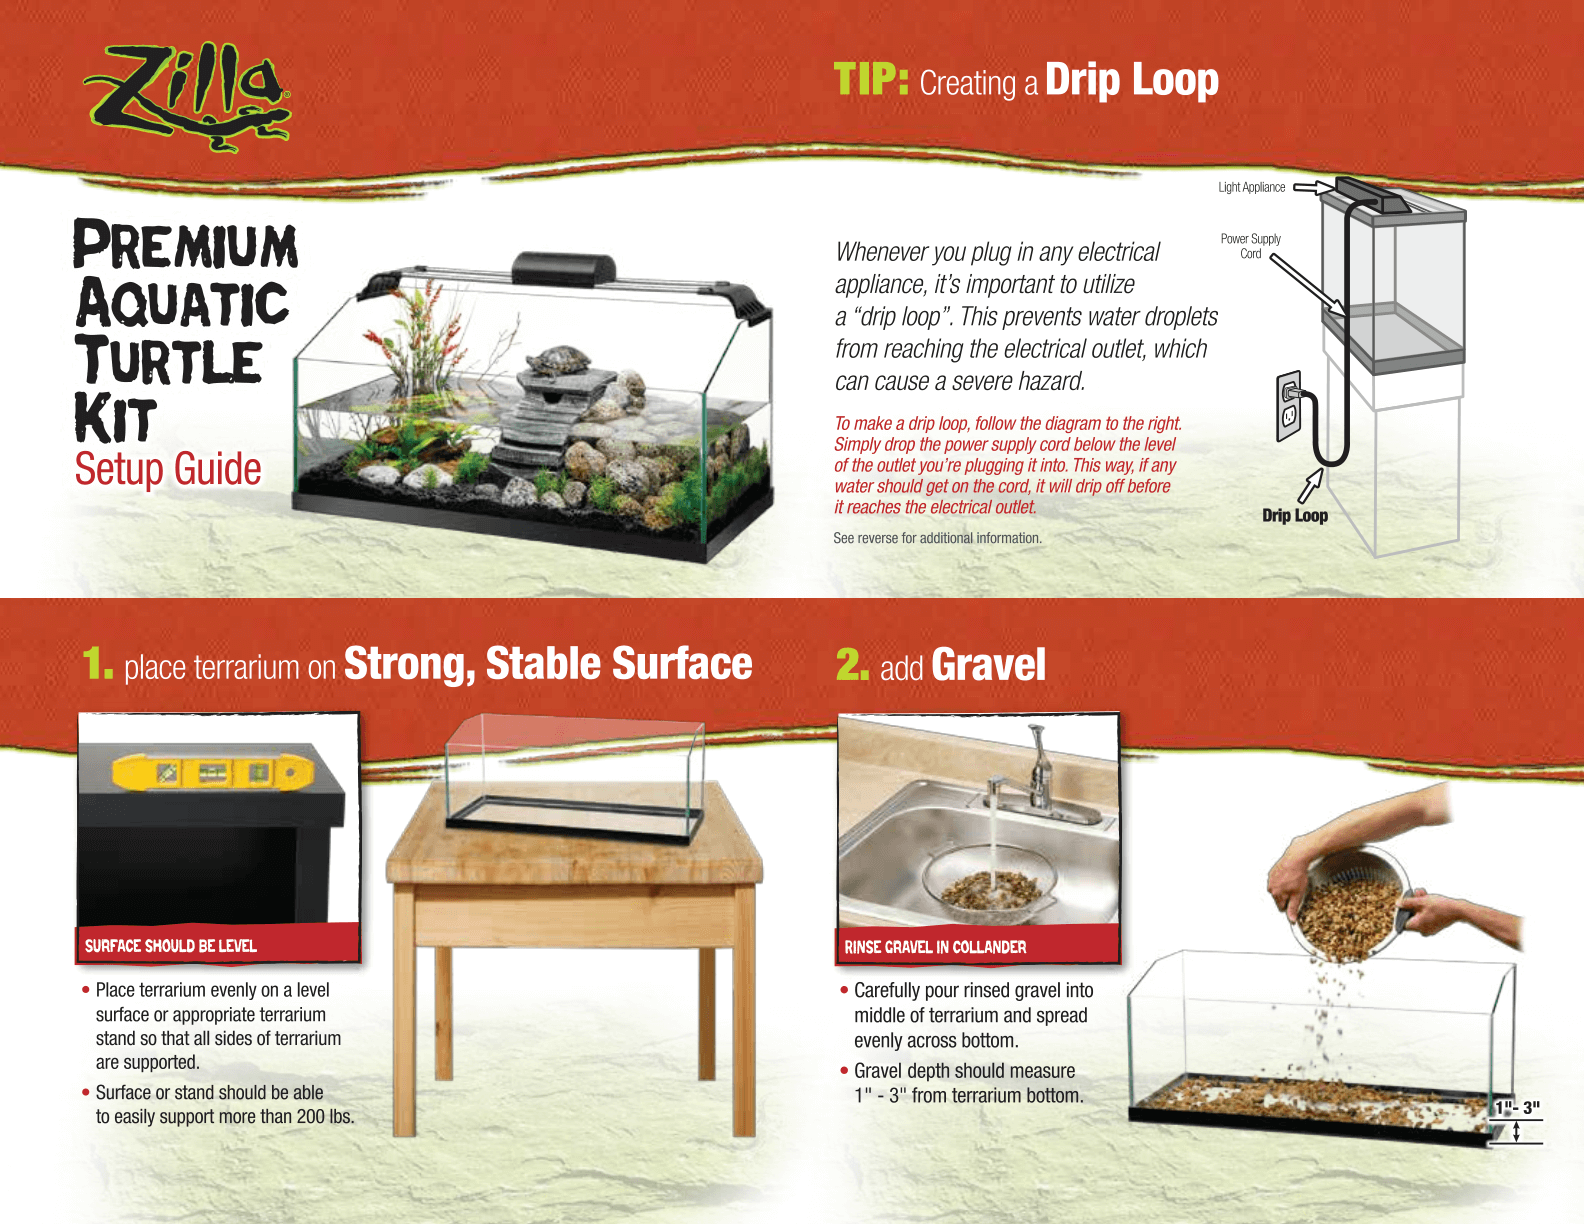 Zilla Premium Aquatic Turtle Kit Setup Guide